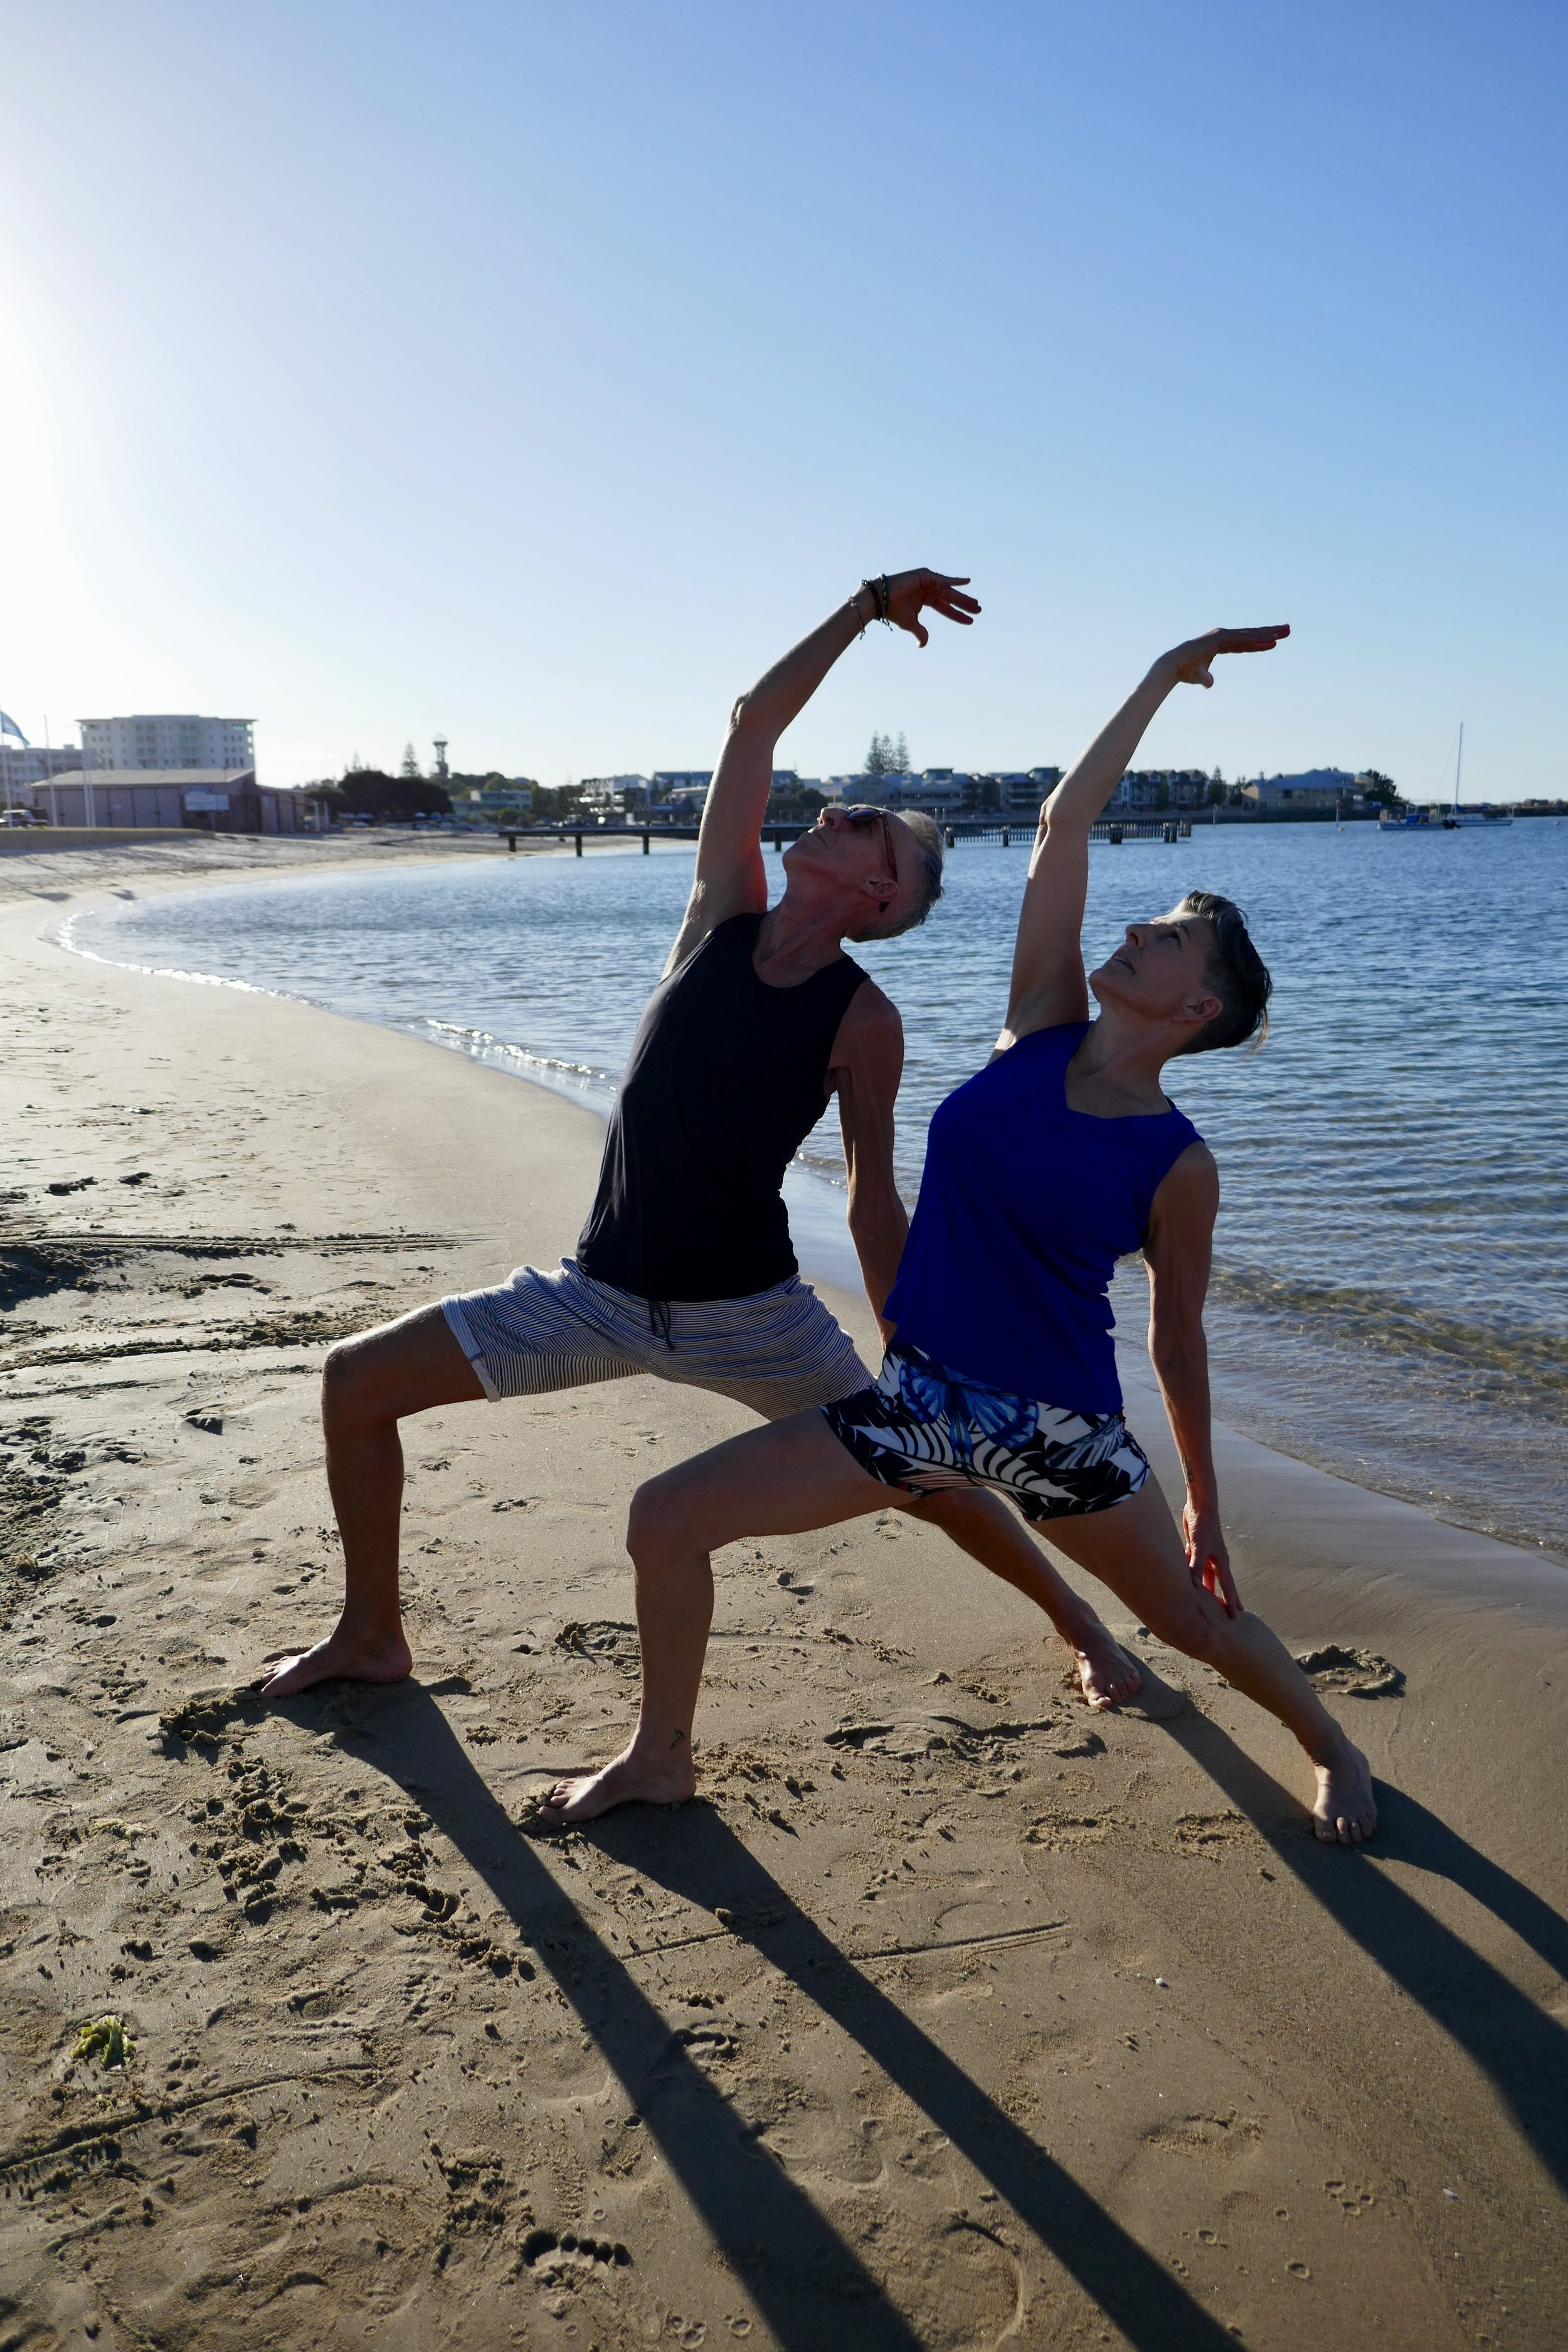 Donelle and John practising Yoga on the beach in Bunbury